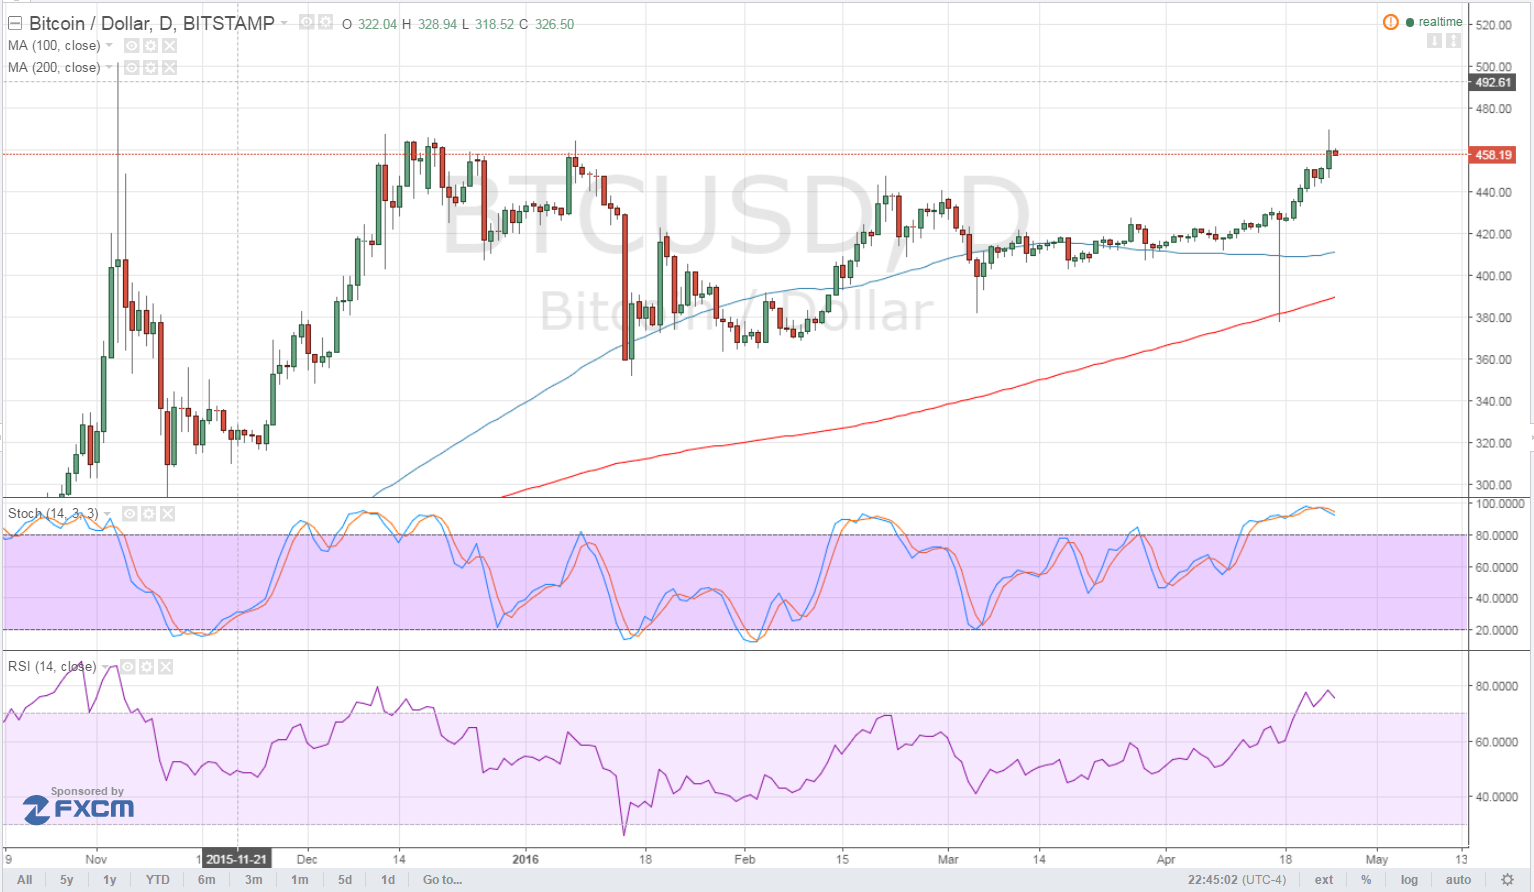 Bitcoin Price Technical Analysis for 04/25/2016 - Aiming for $500?